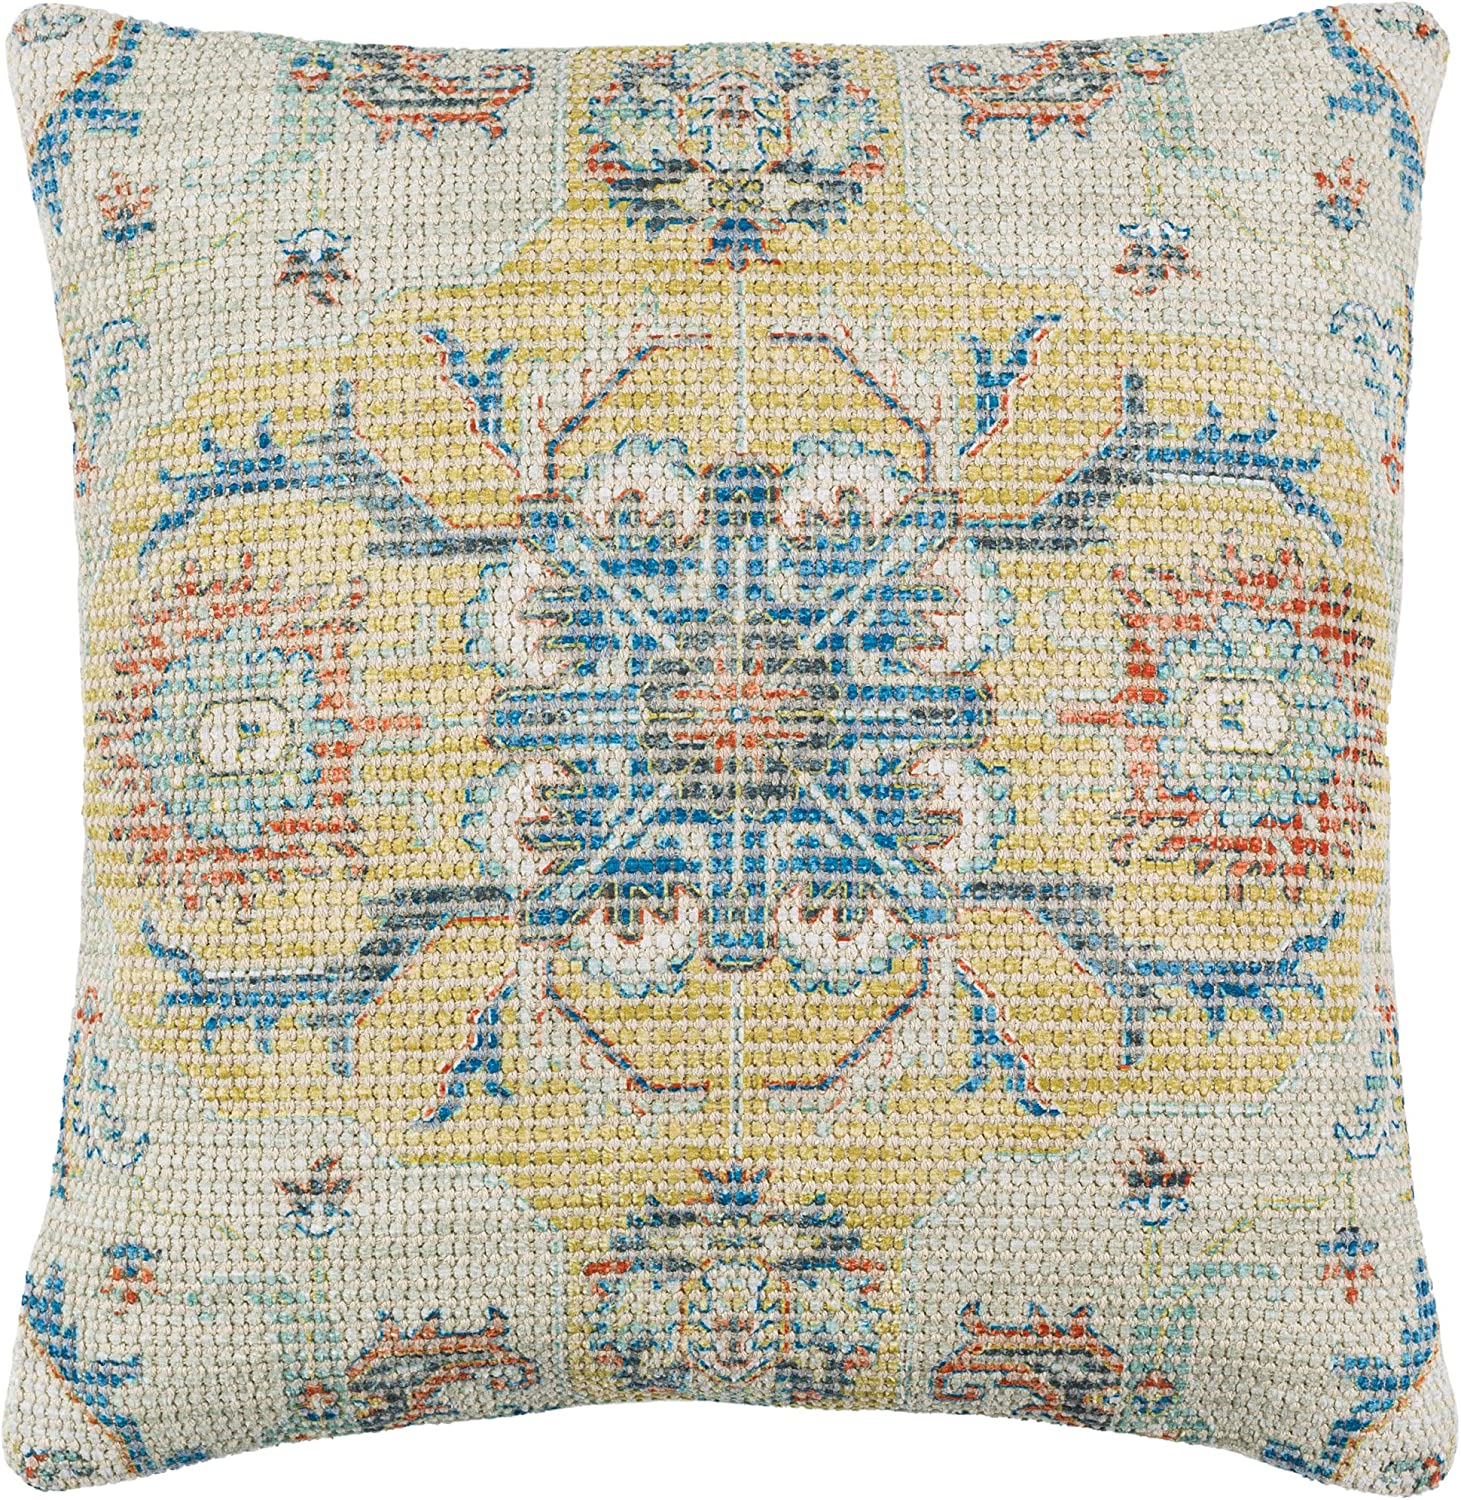 Artistic Weavers Loiza Pillow Popular products H Baltimore Mall x W 22